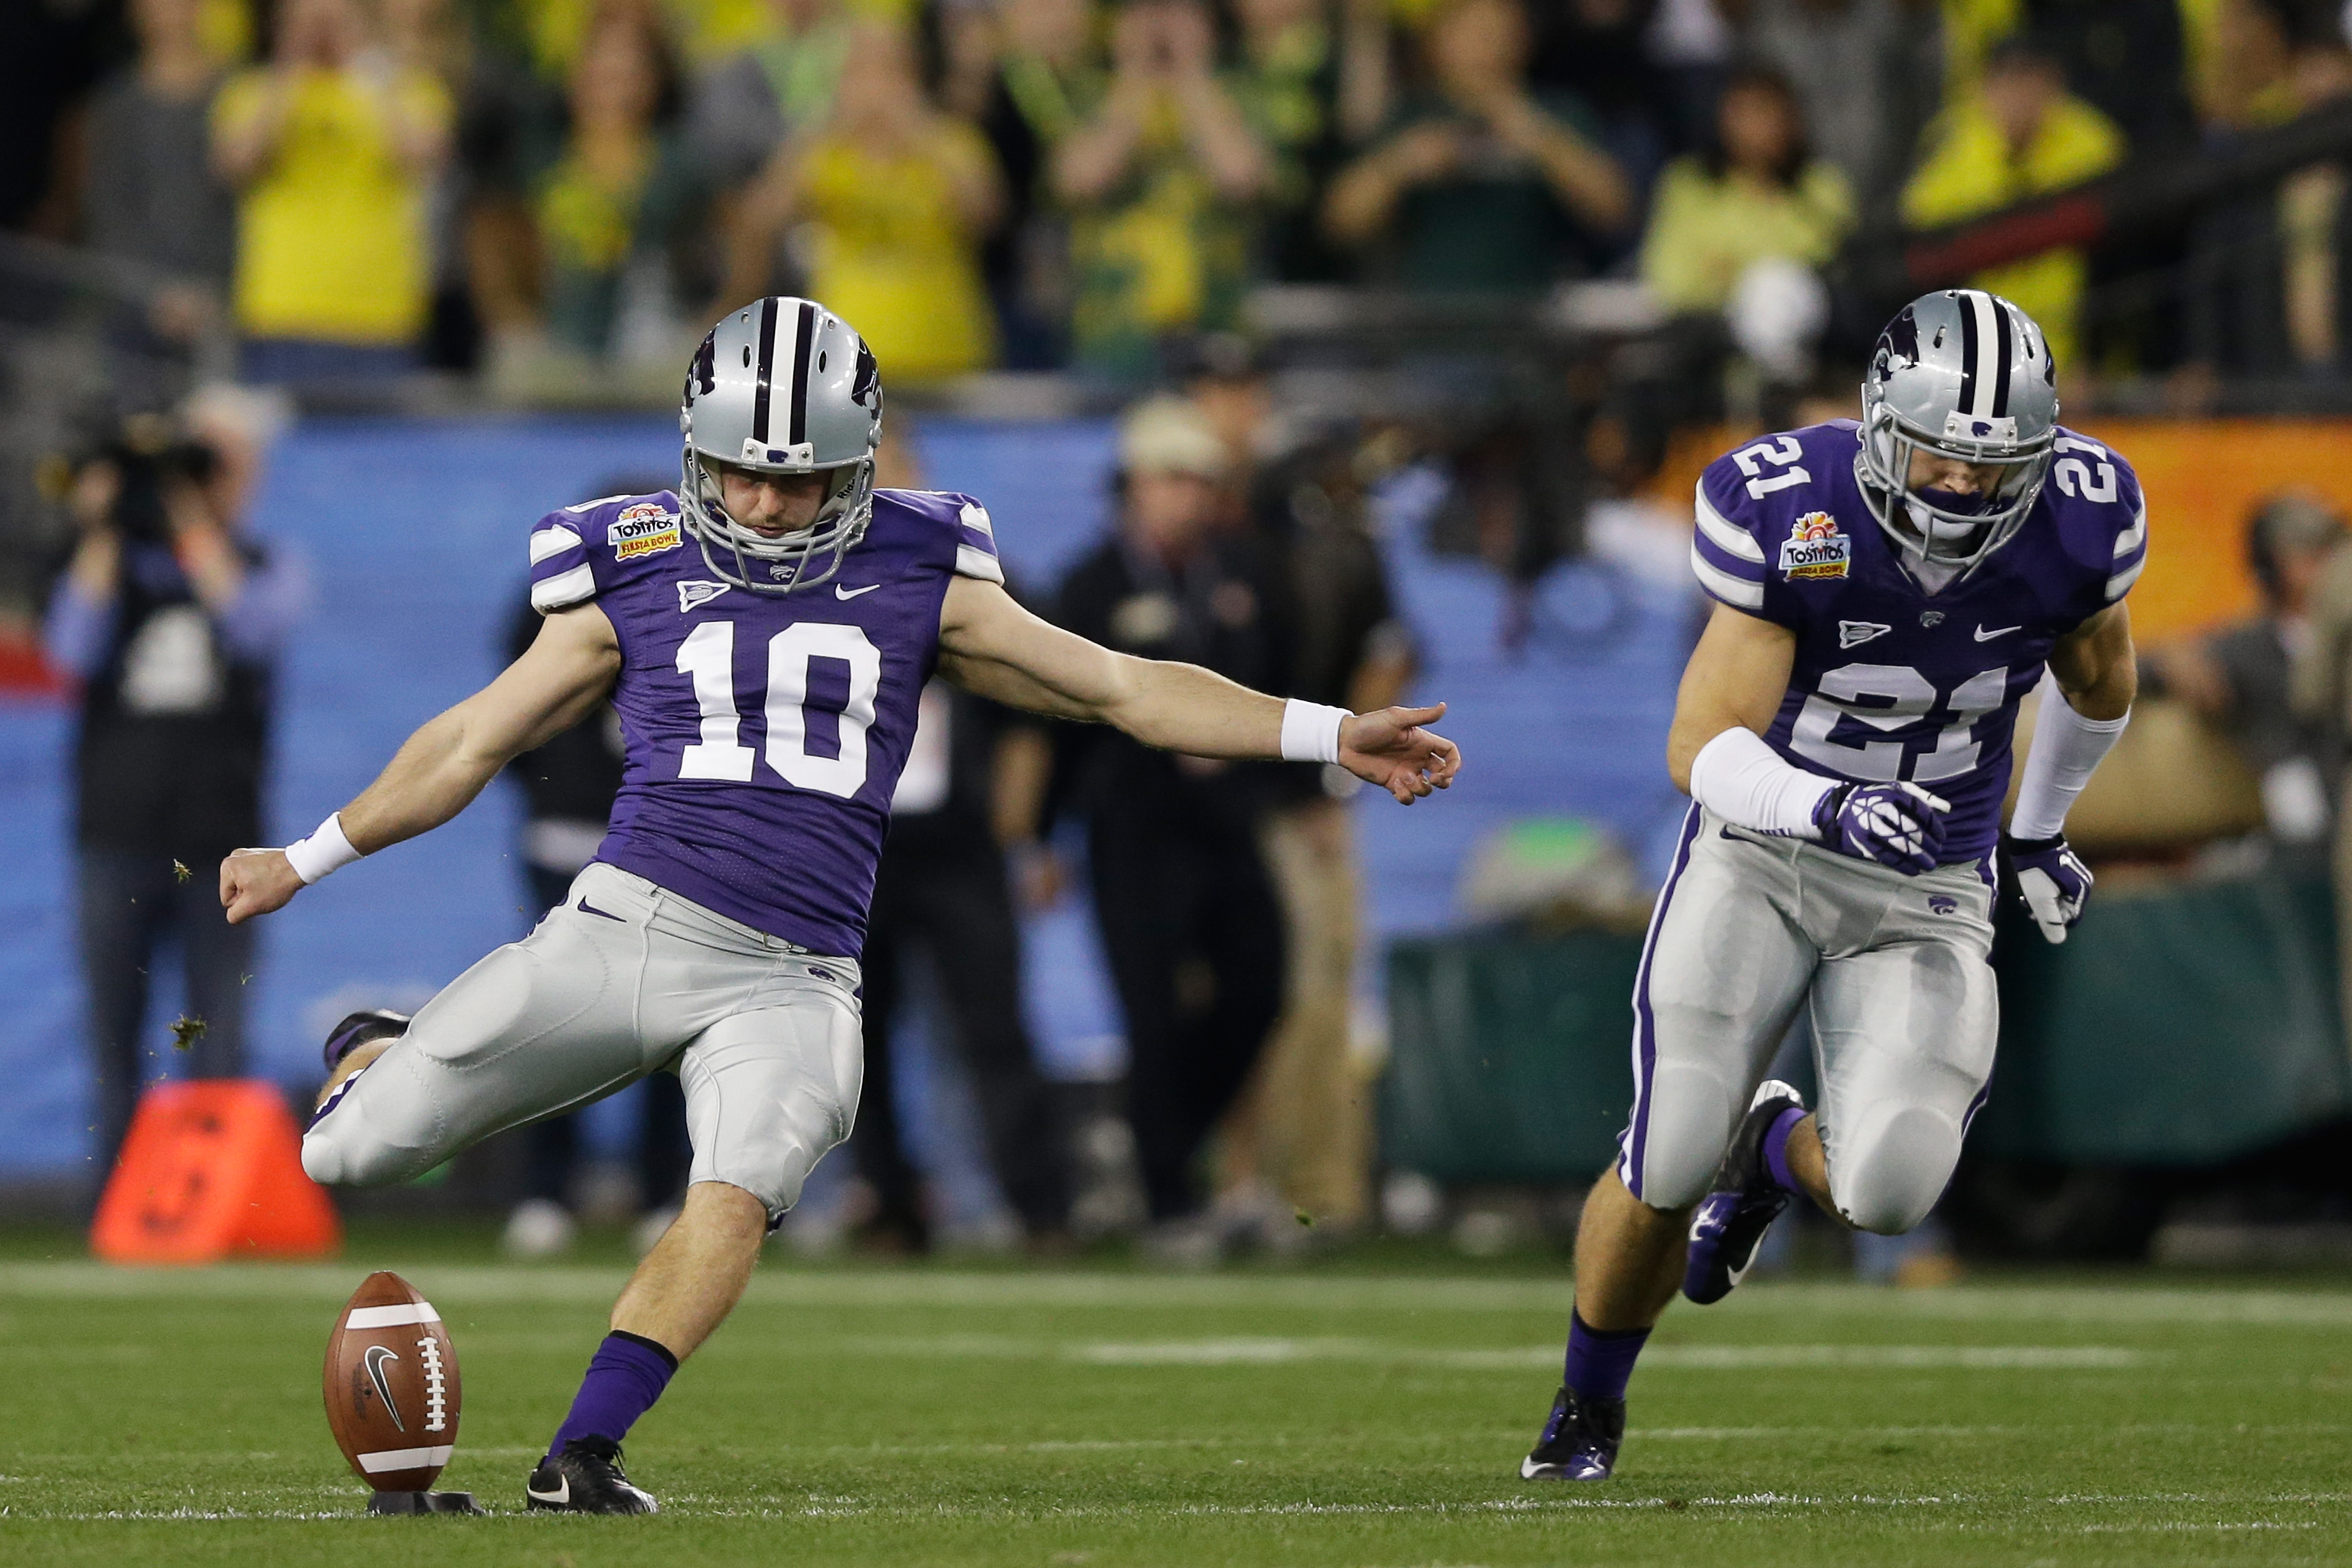 Anthony Cantele was a great kicker for Kansas State. Now he is coach to the next great kicker, Blake Lynch, who will inherit Cantele's No. 10.